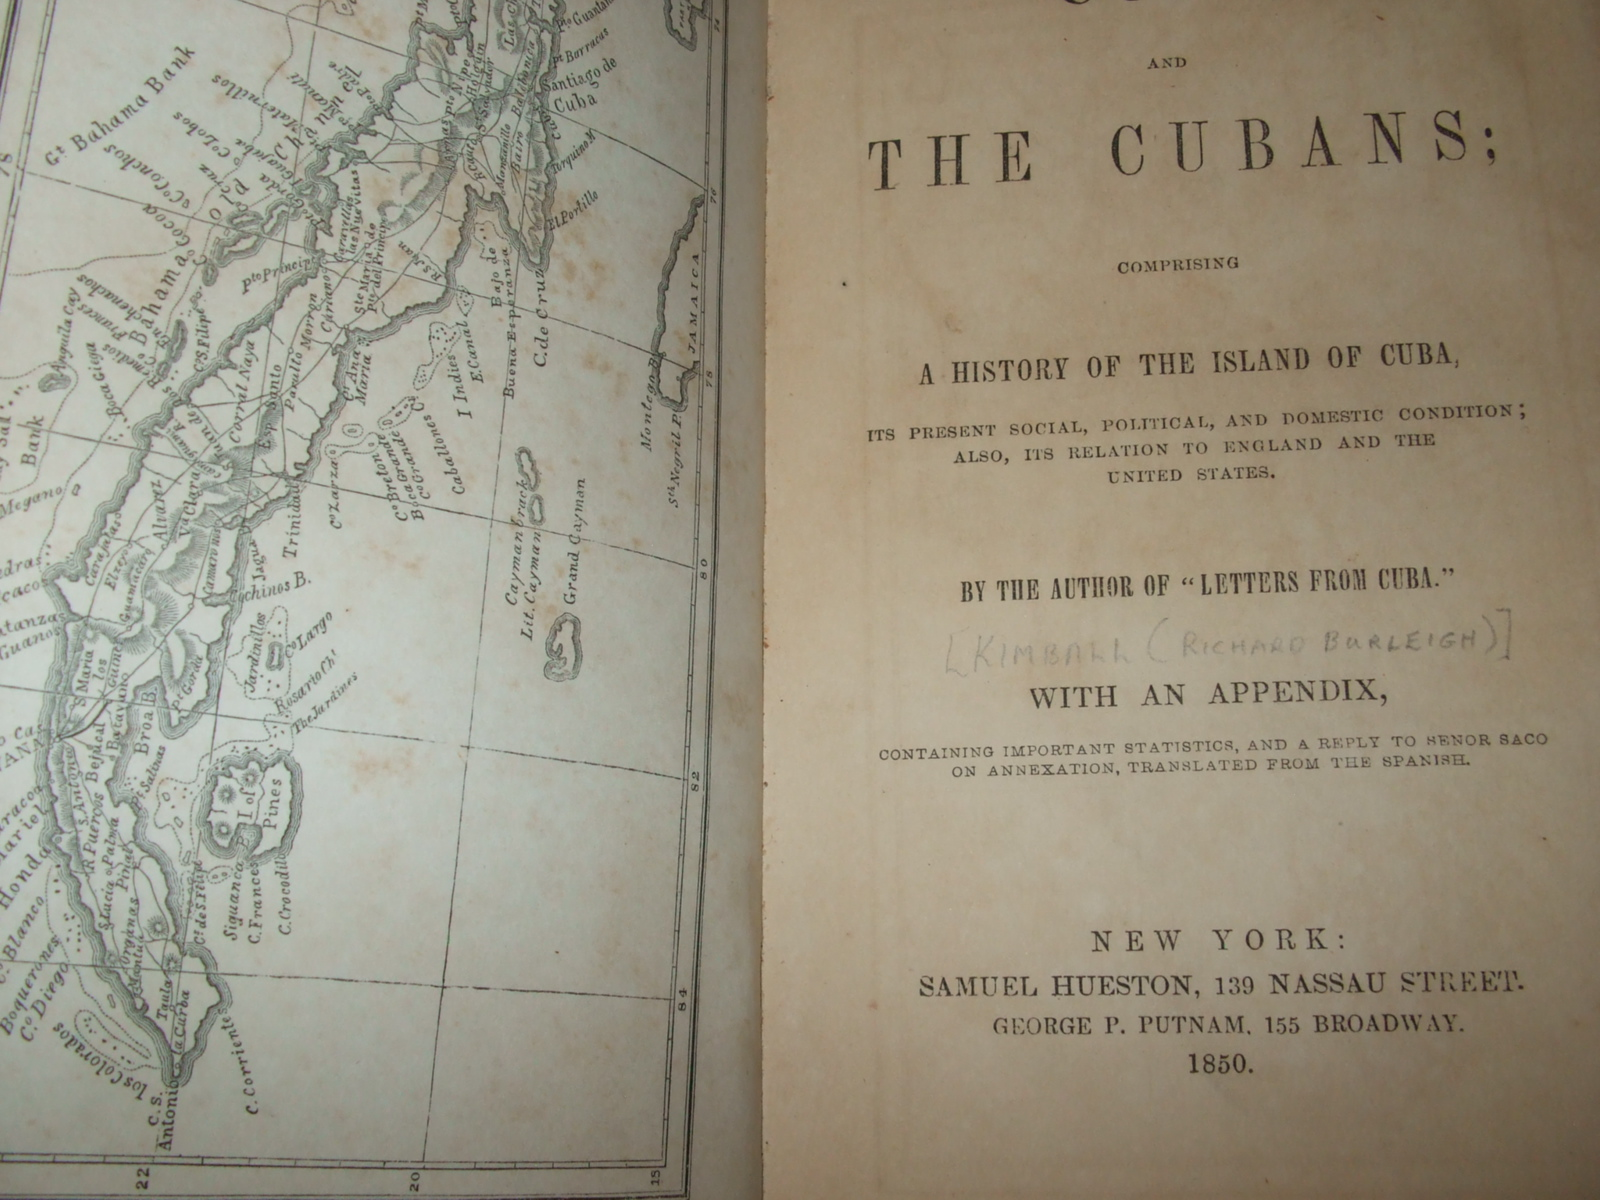 Image for Cuba, and the Cubans; Comprising a History of the Island of Cuba, Its Present Social, Political, and Domestic Condition; Also, Its Relation to England and the United States